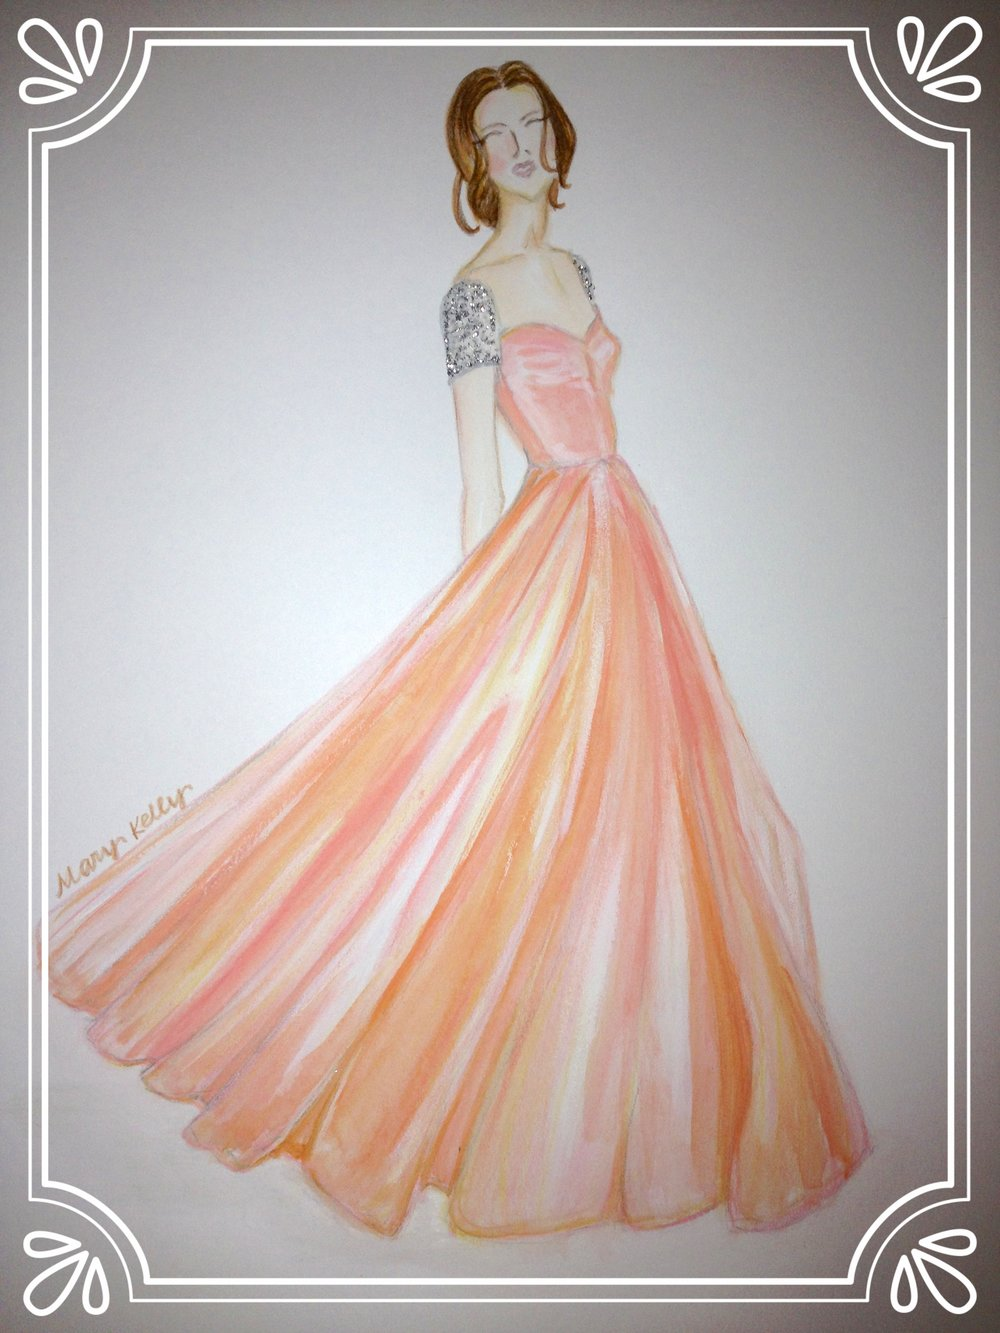 peach dress with bling sleeves, mary kelly designs © 2017